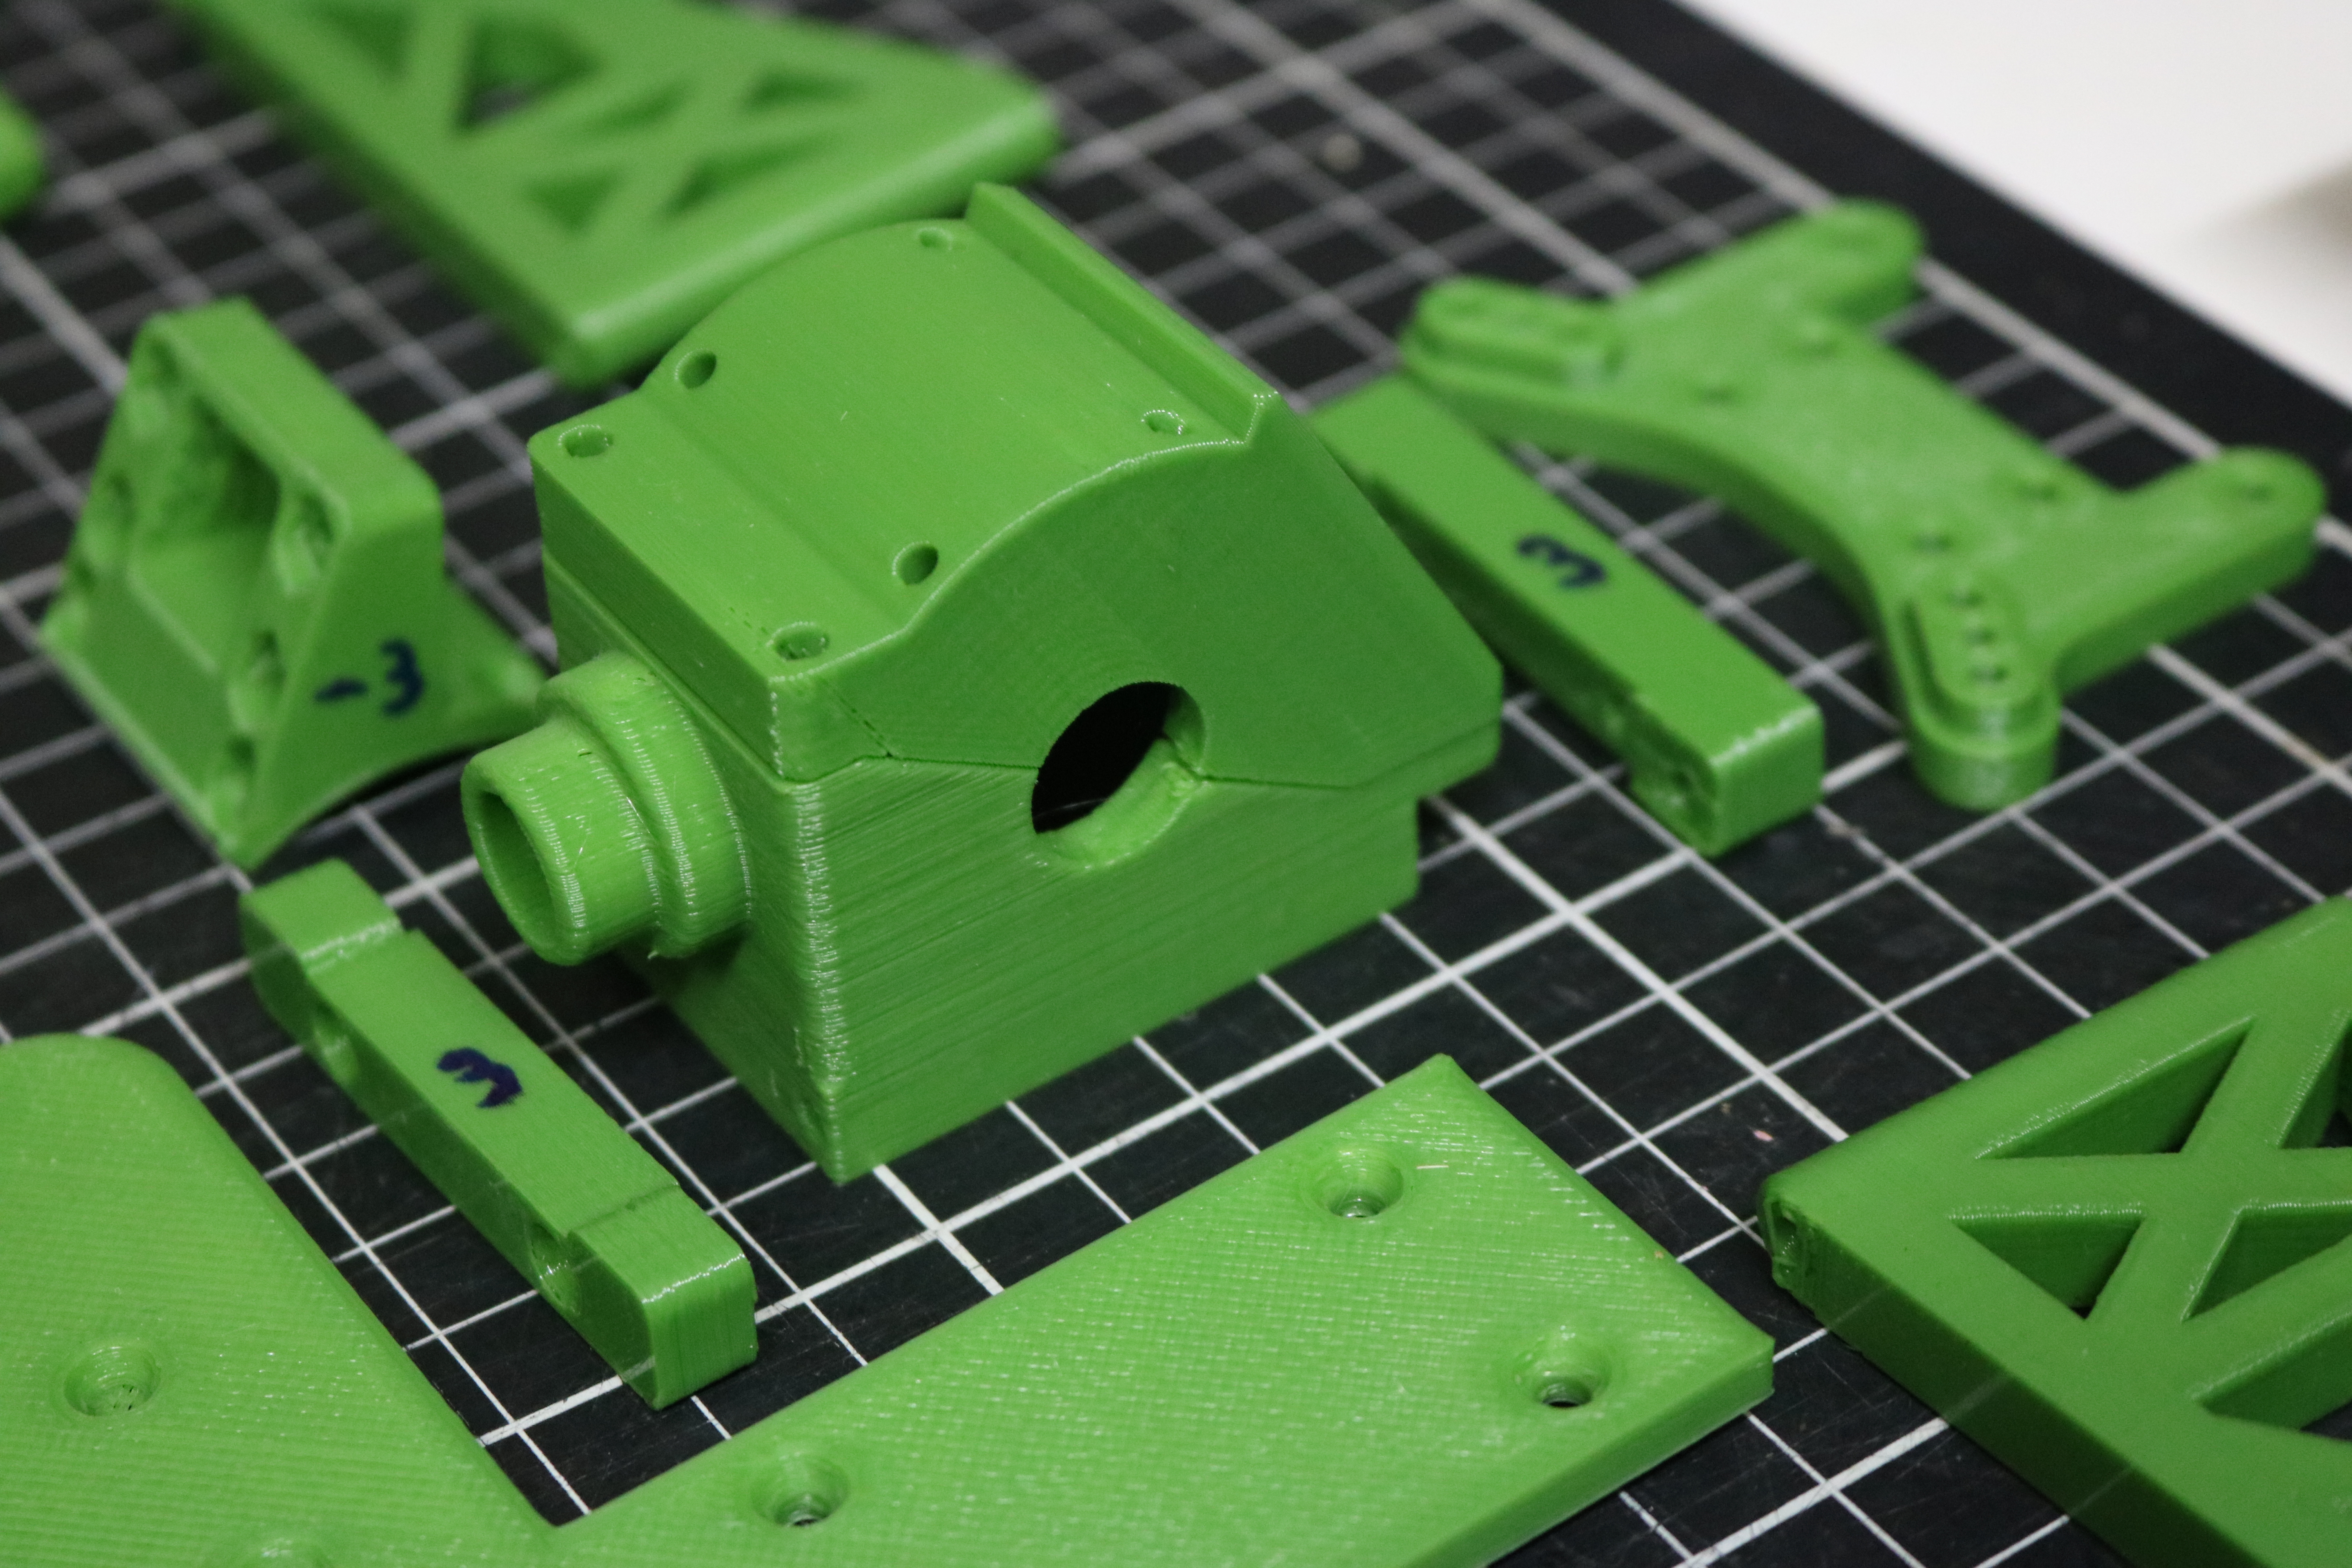 rear frdiff parts printed